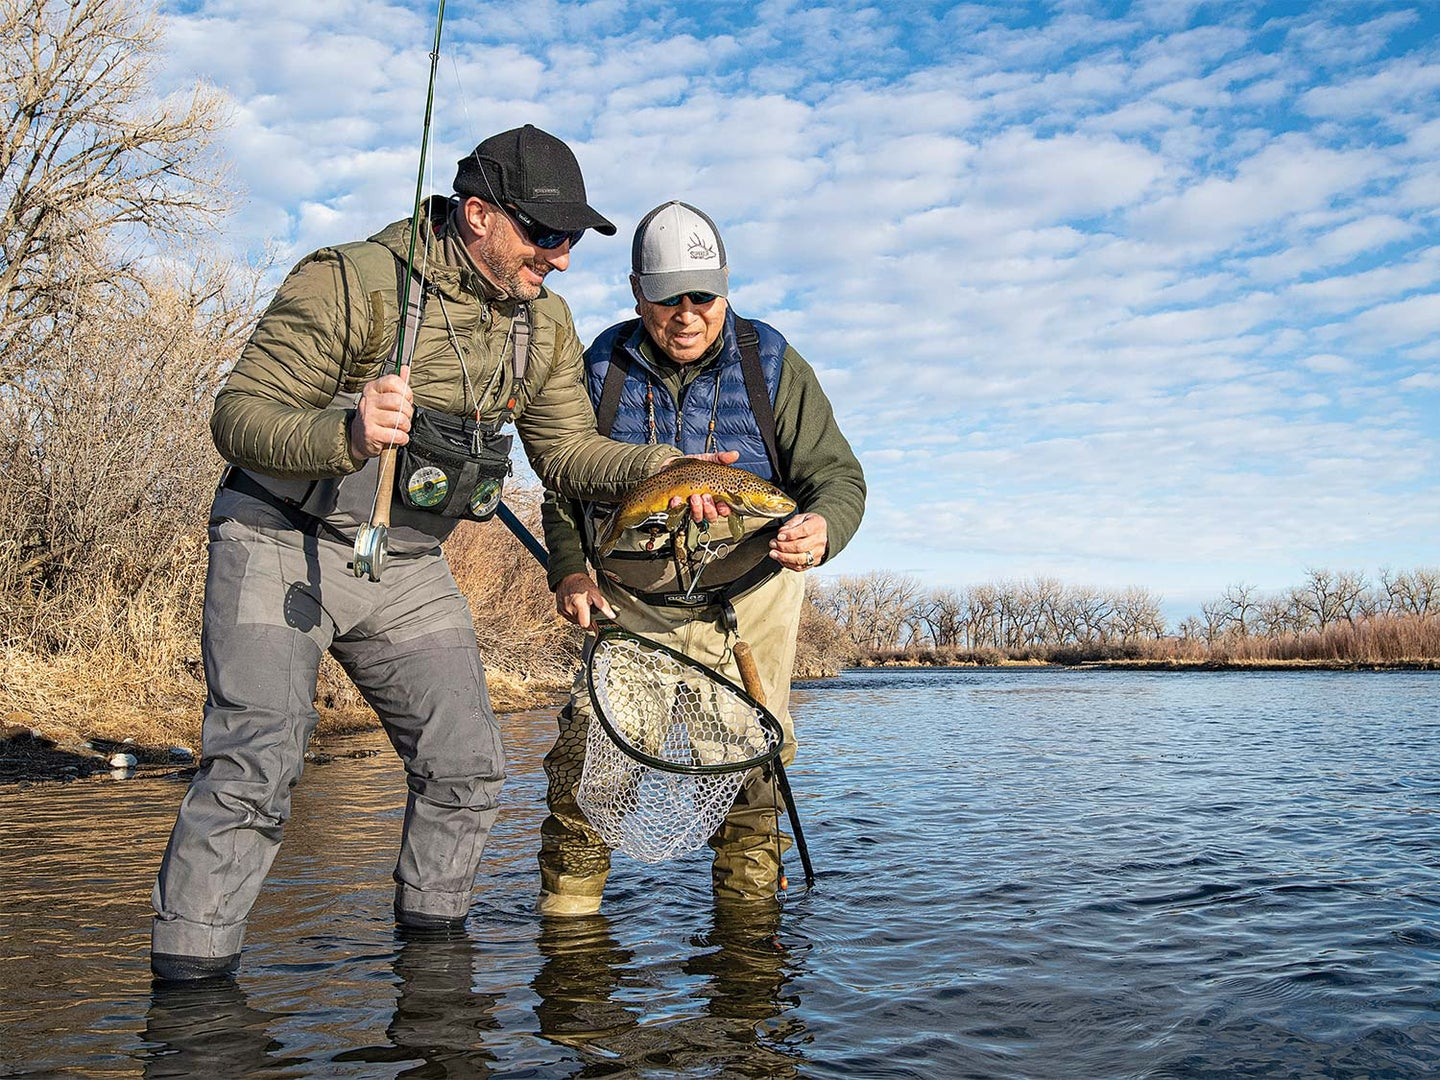 Two anglers fishing trout in Montana's Bighorn River.